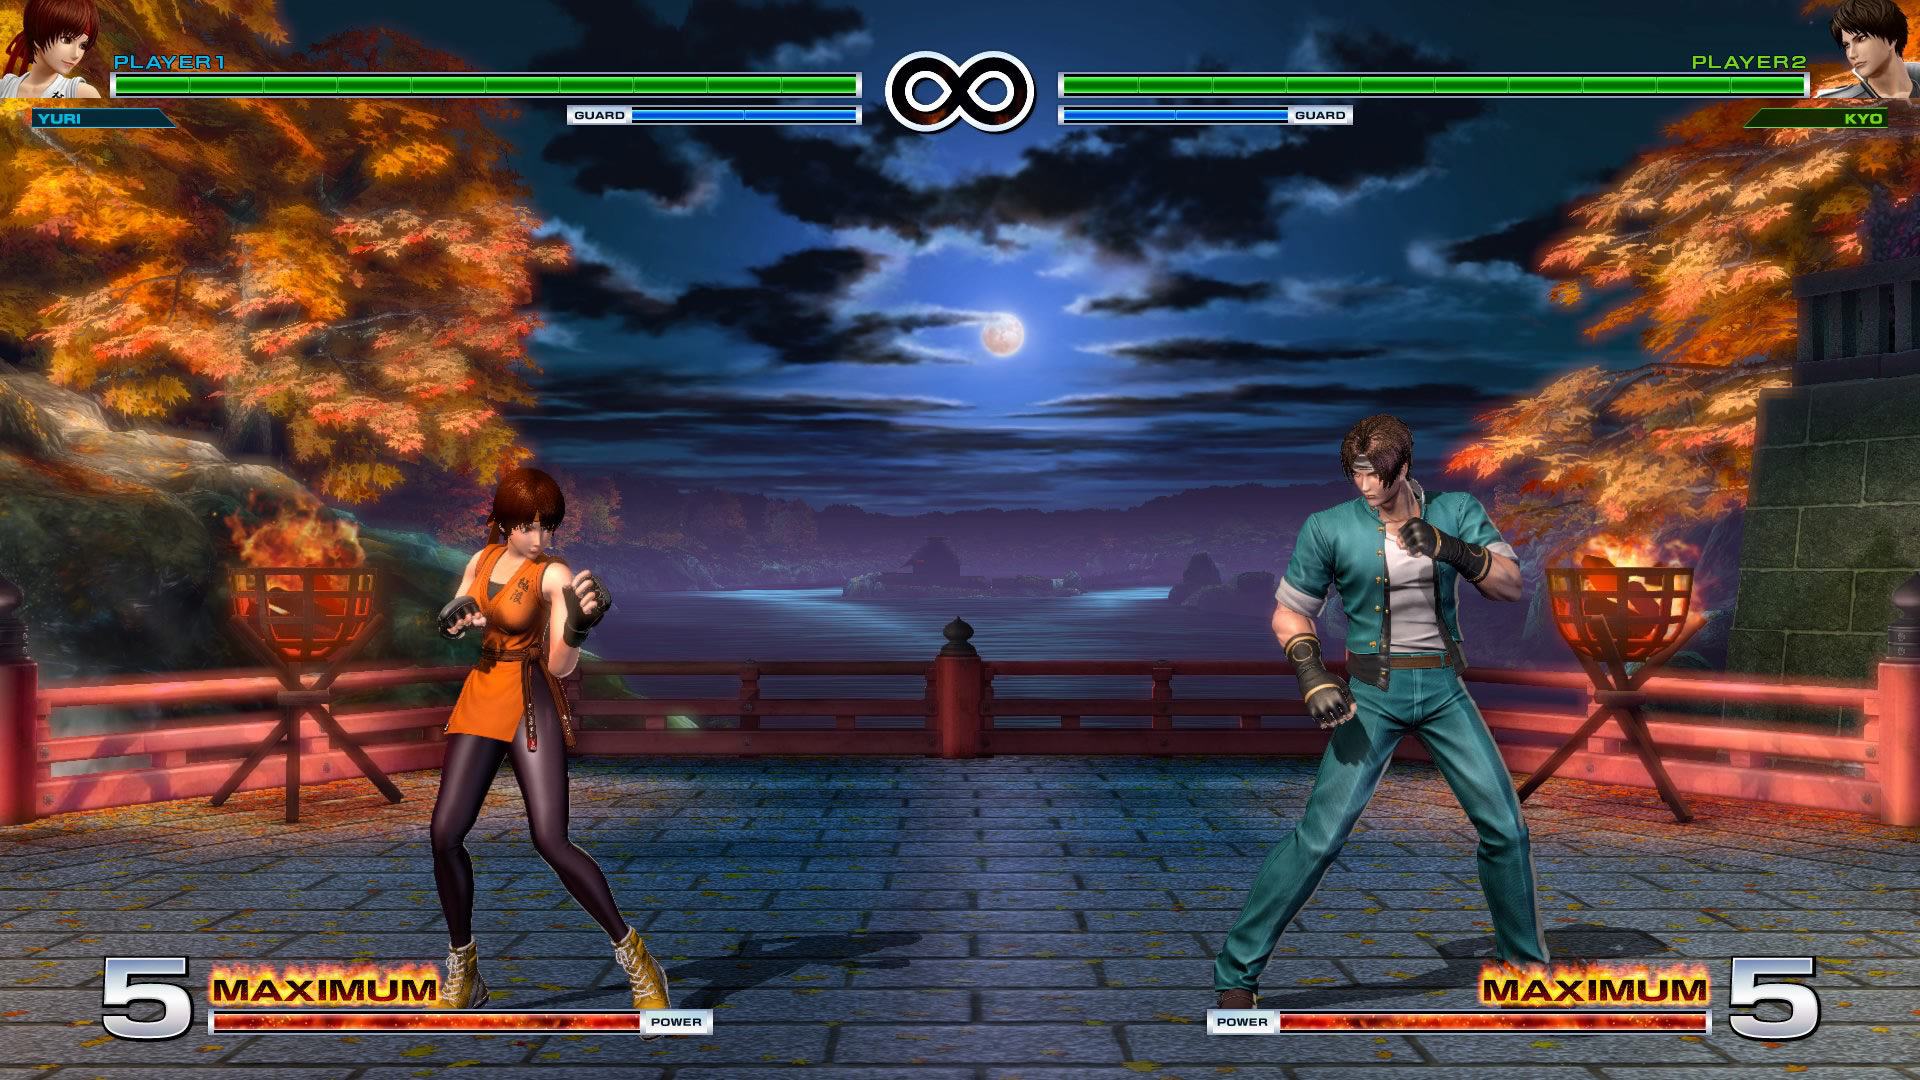 King of Fighters 14 1.10 graphics update 58 out of 60 image gallery